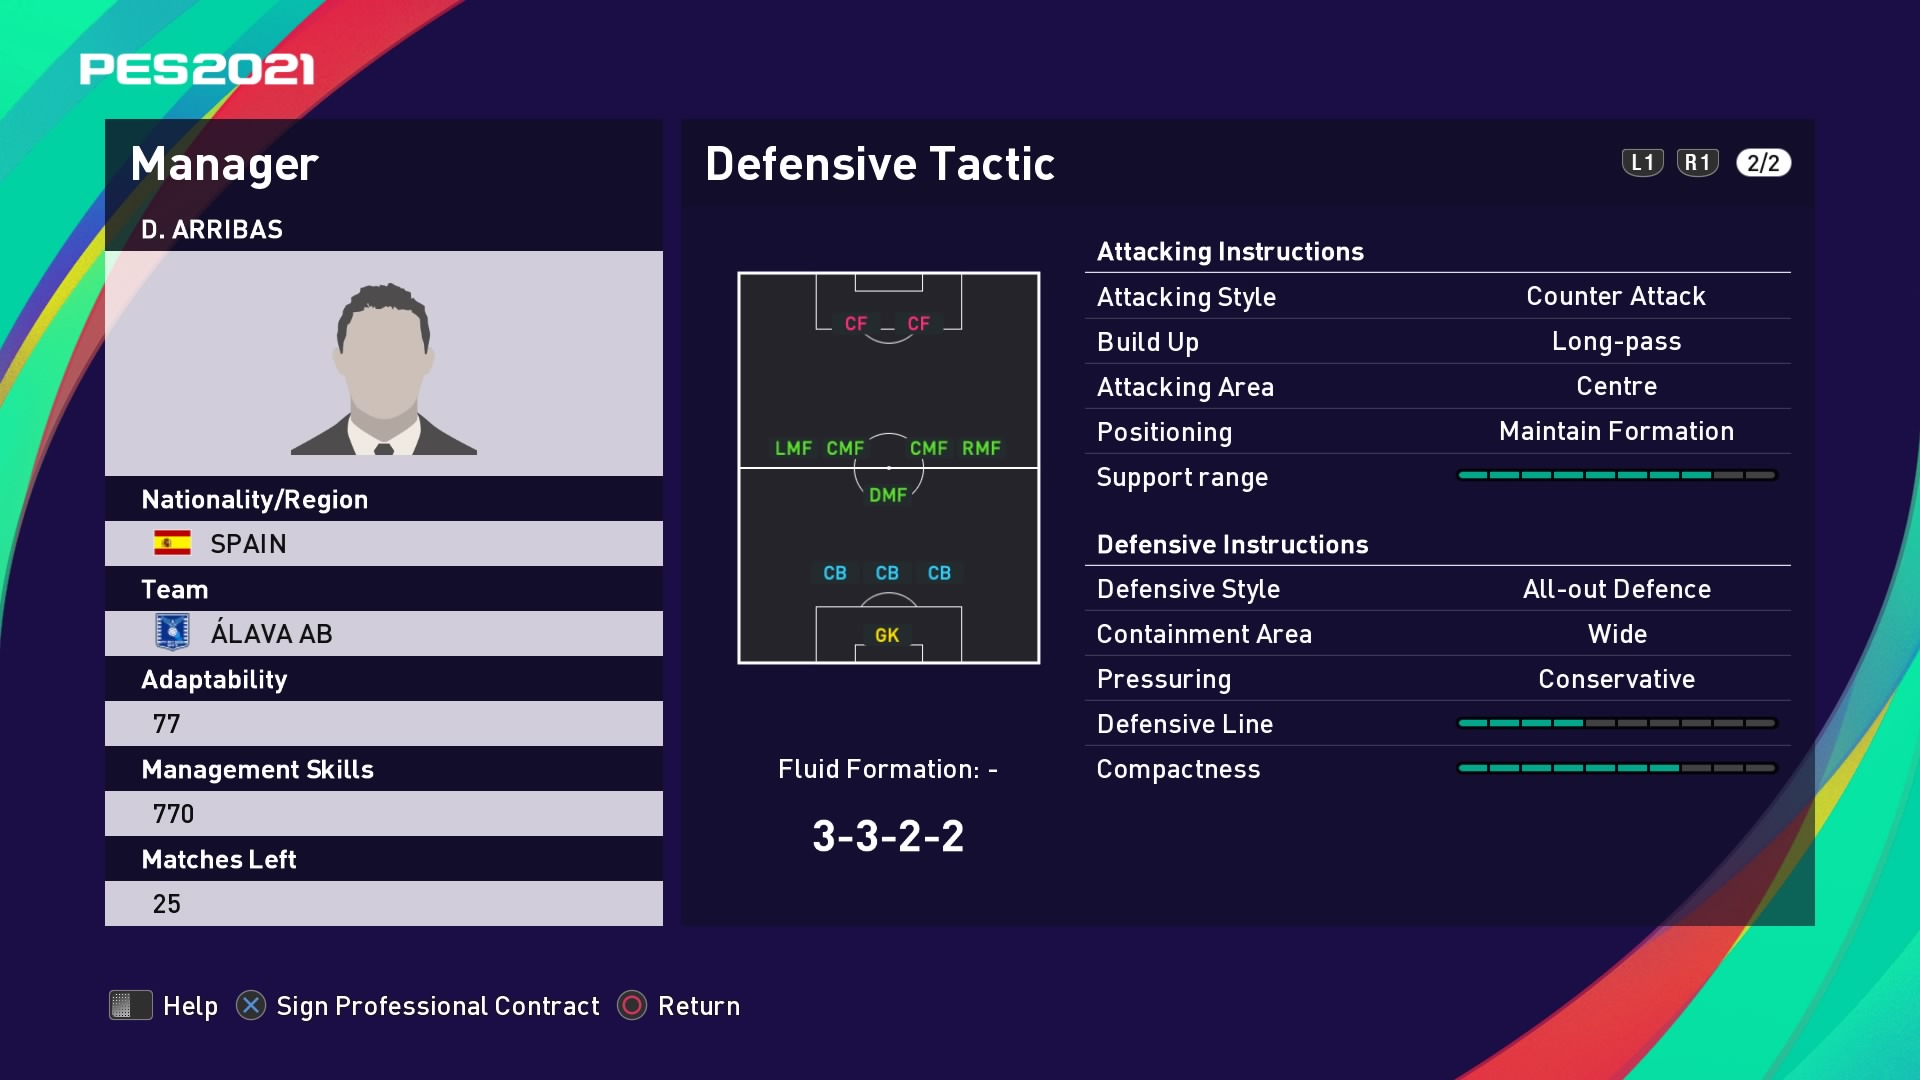 D. Arribas (Pablo Machín) Defensive Tactic in PES 2021 myClub